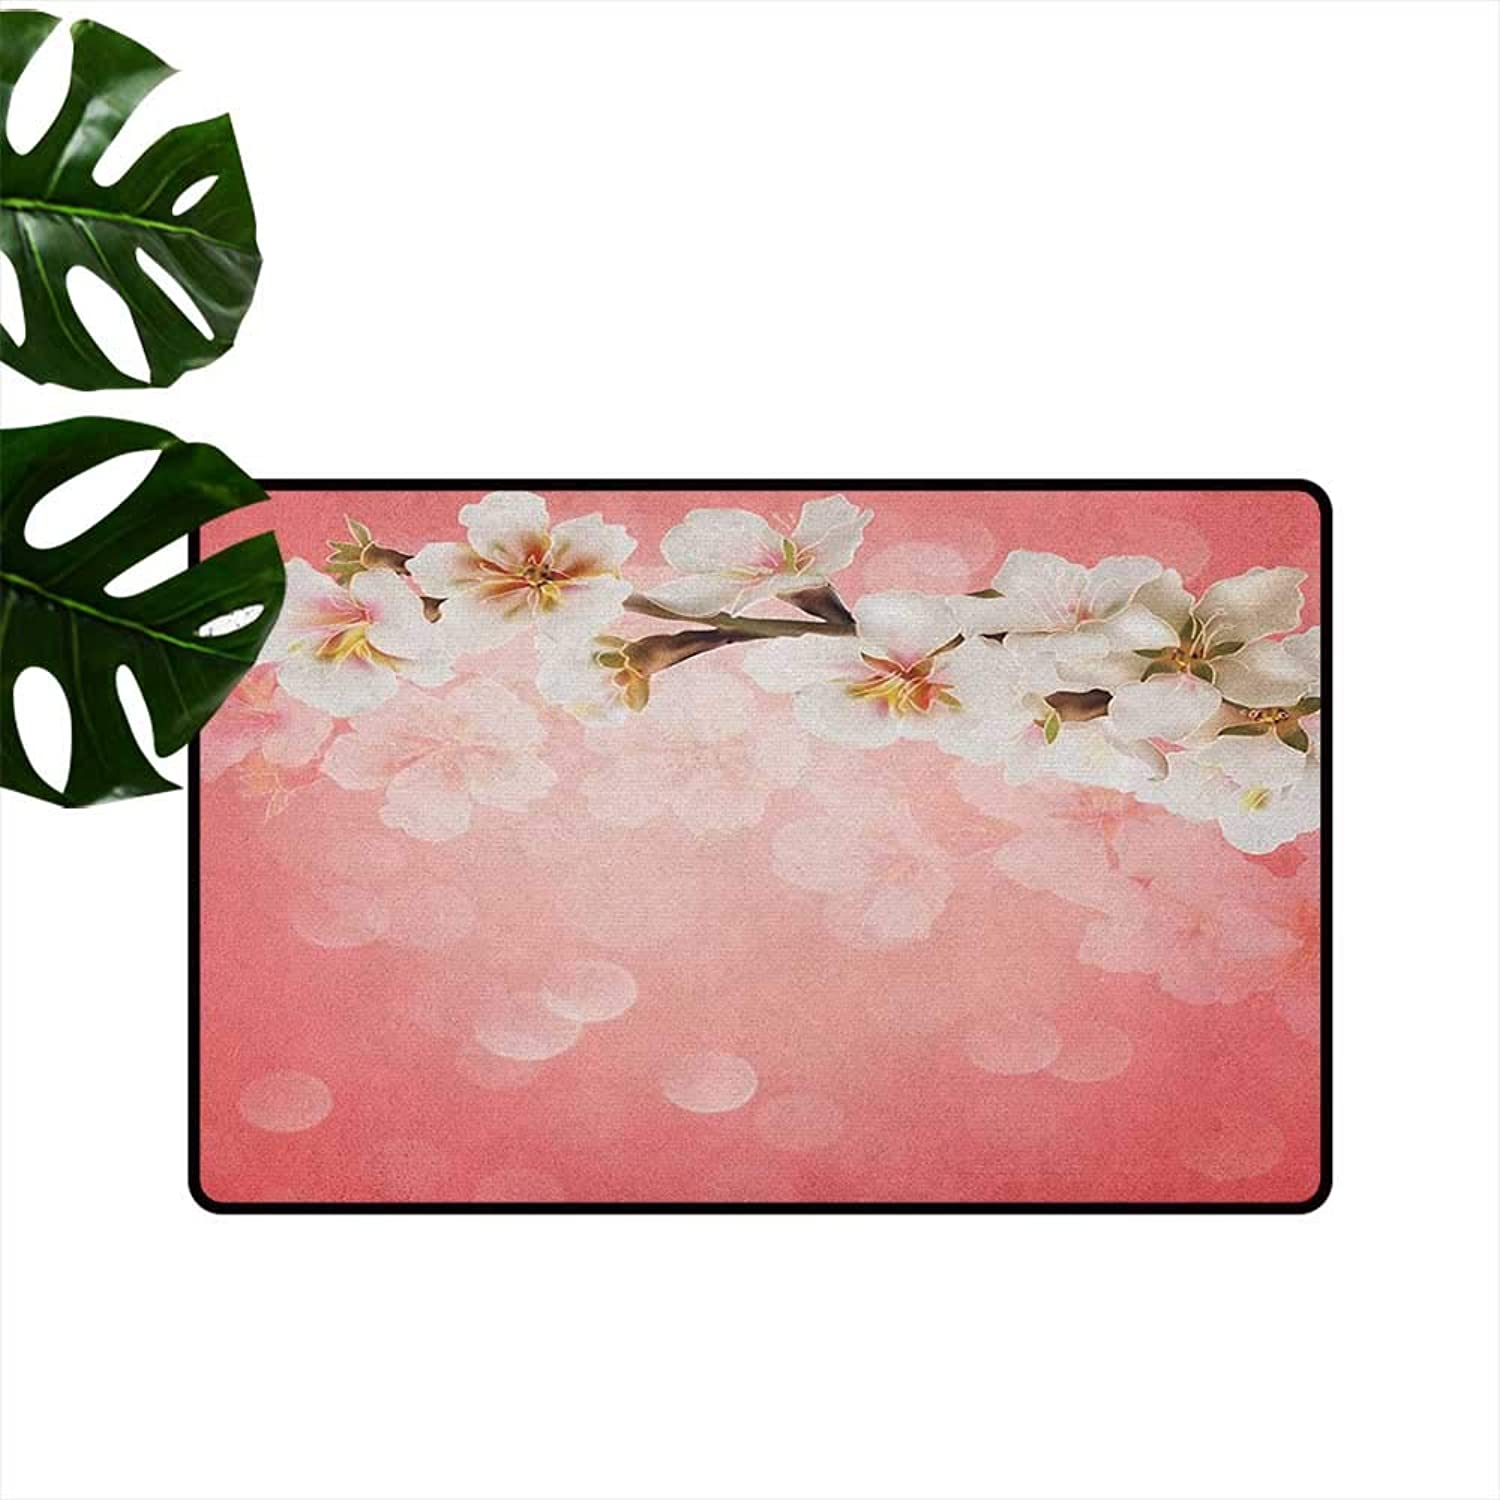 Coral Thin Door mat Blossoming Tree Branch Japanese Cherry Sakura Fresh Spring Garden Romantic Quick and Easy to Clean W35 x L59 Coral Green White